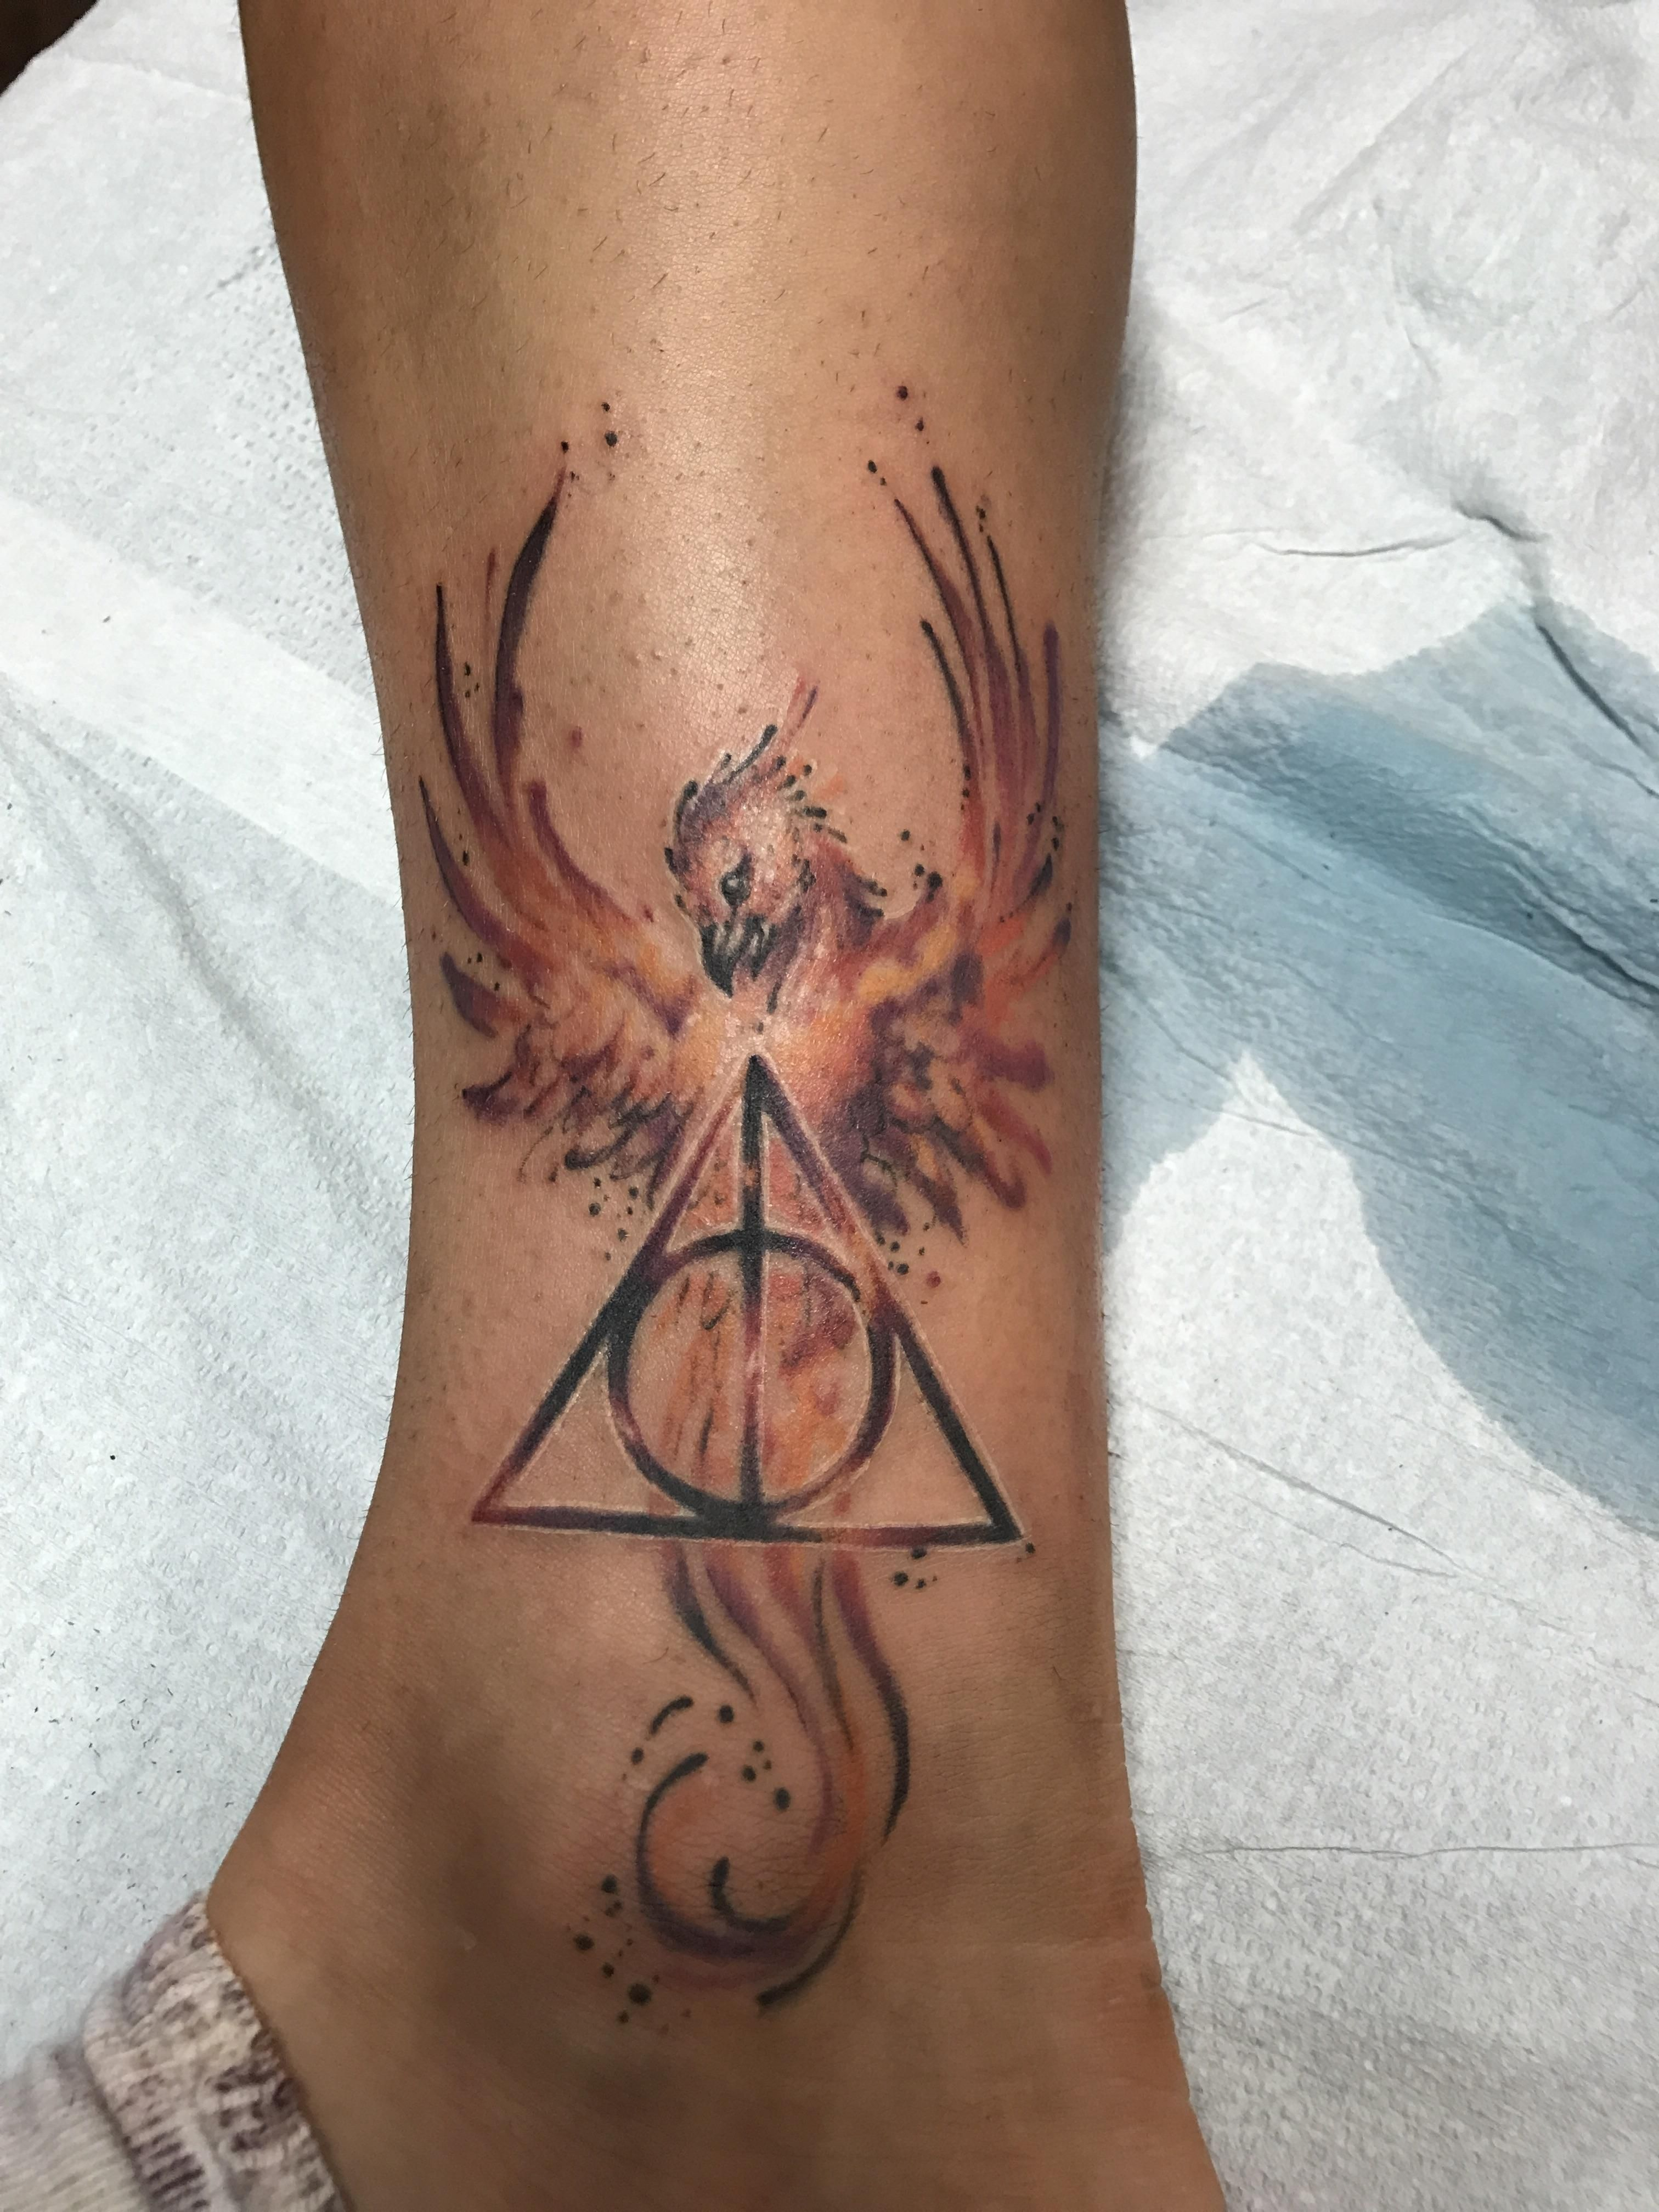 This harry potter tattoo my girlfriend got today tattoo by invidia